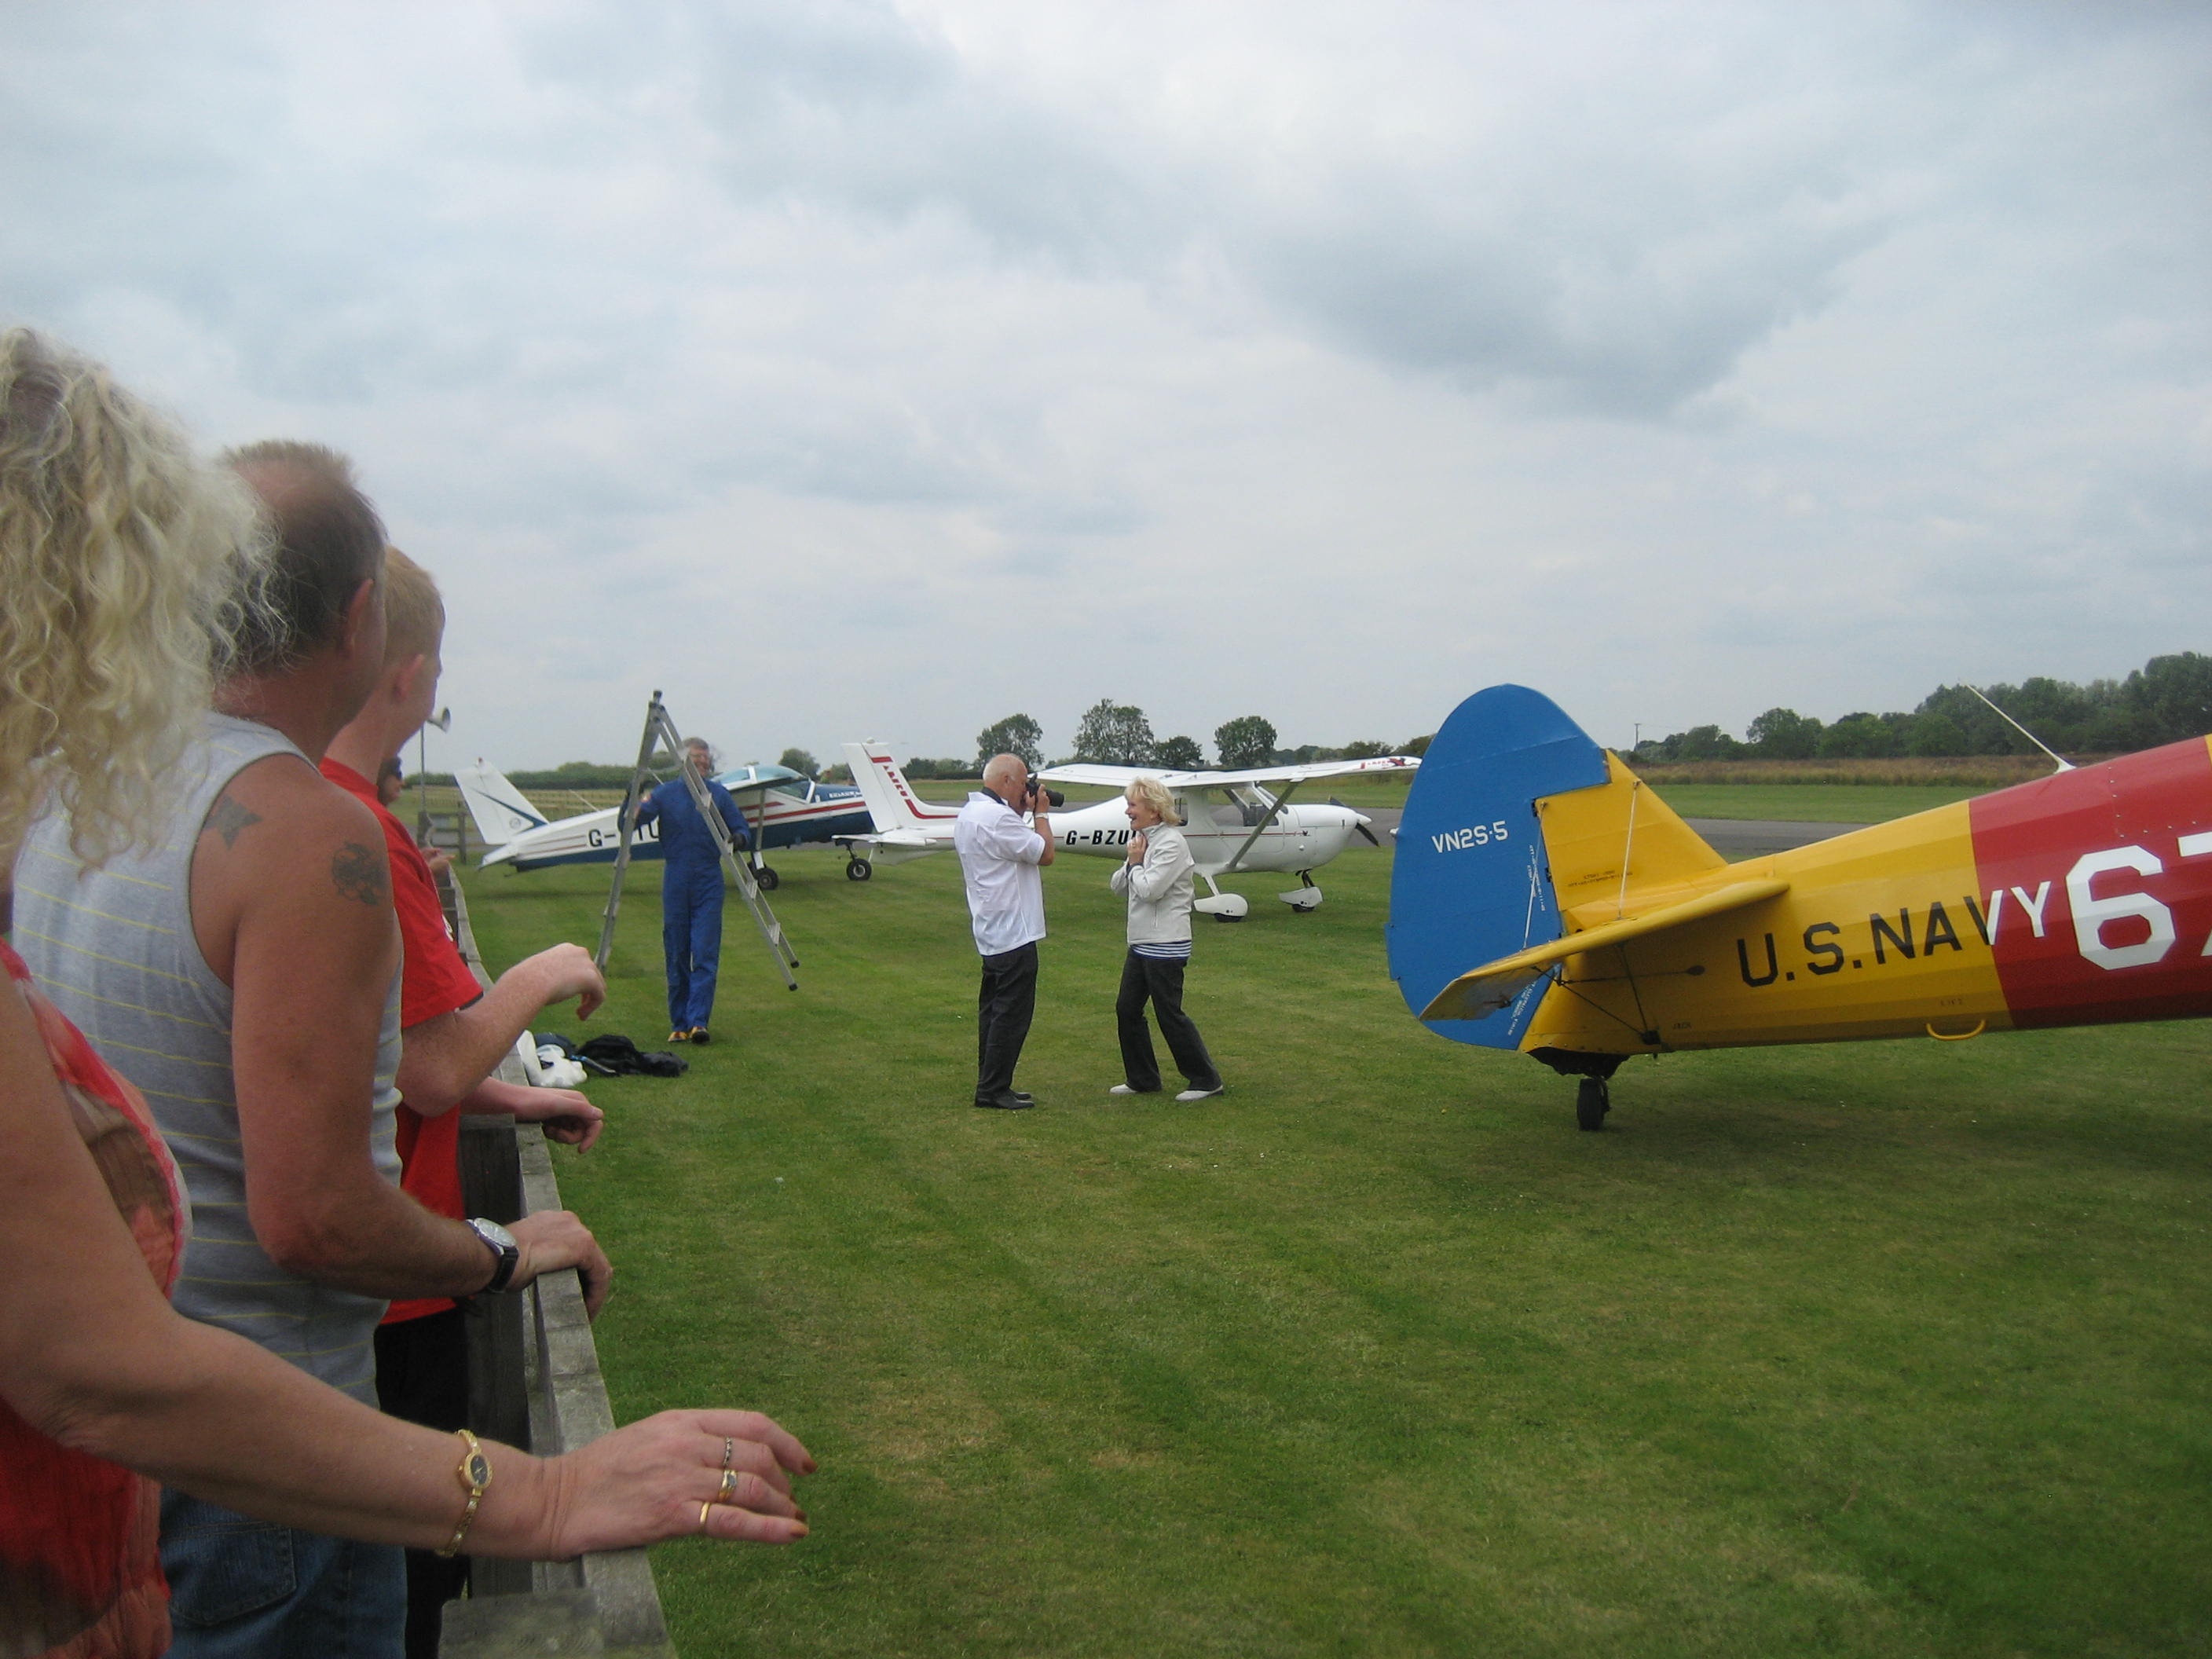 wingwalk-30th-july-2011-small-camera-031